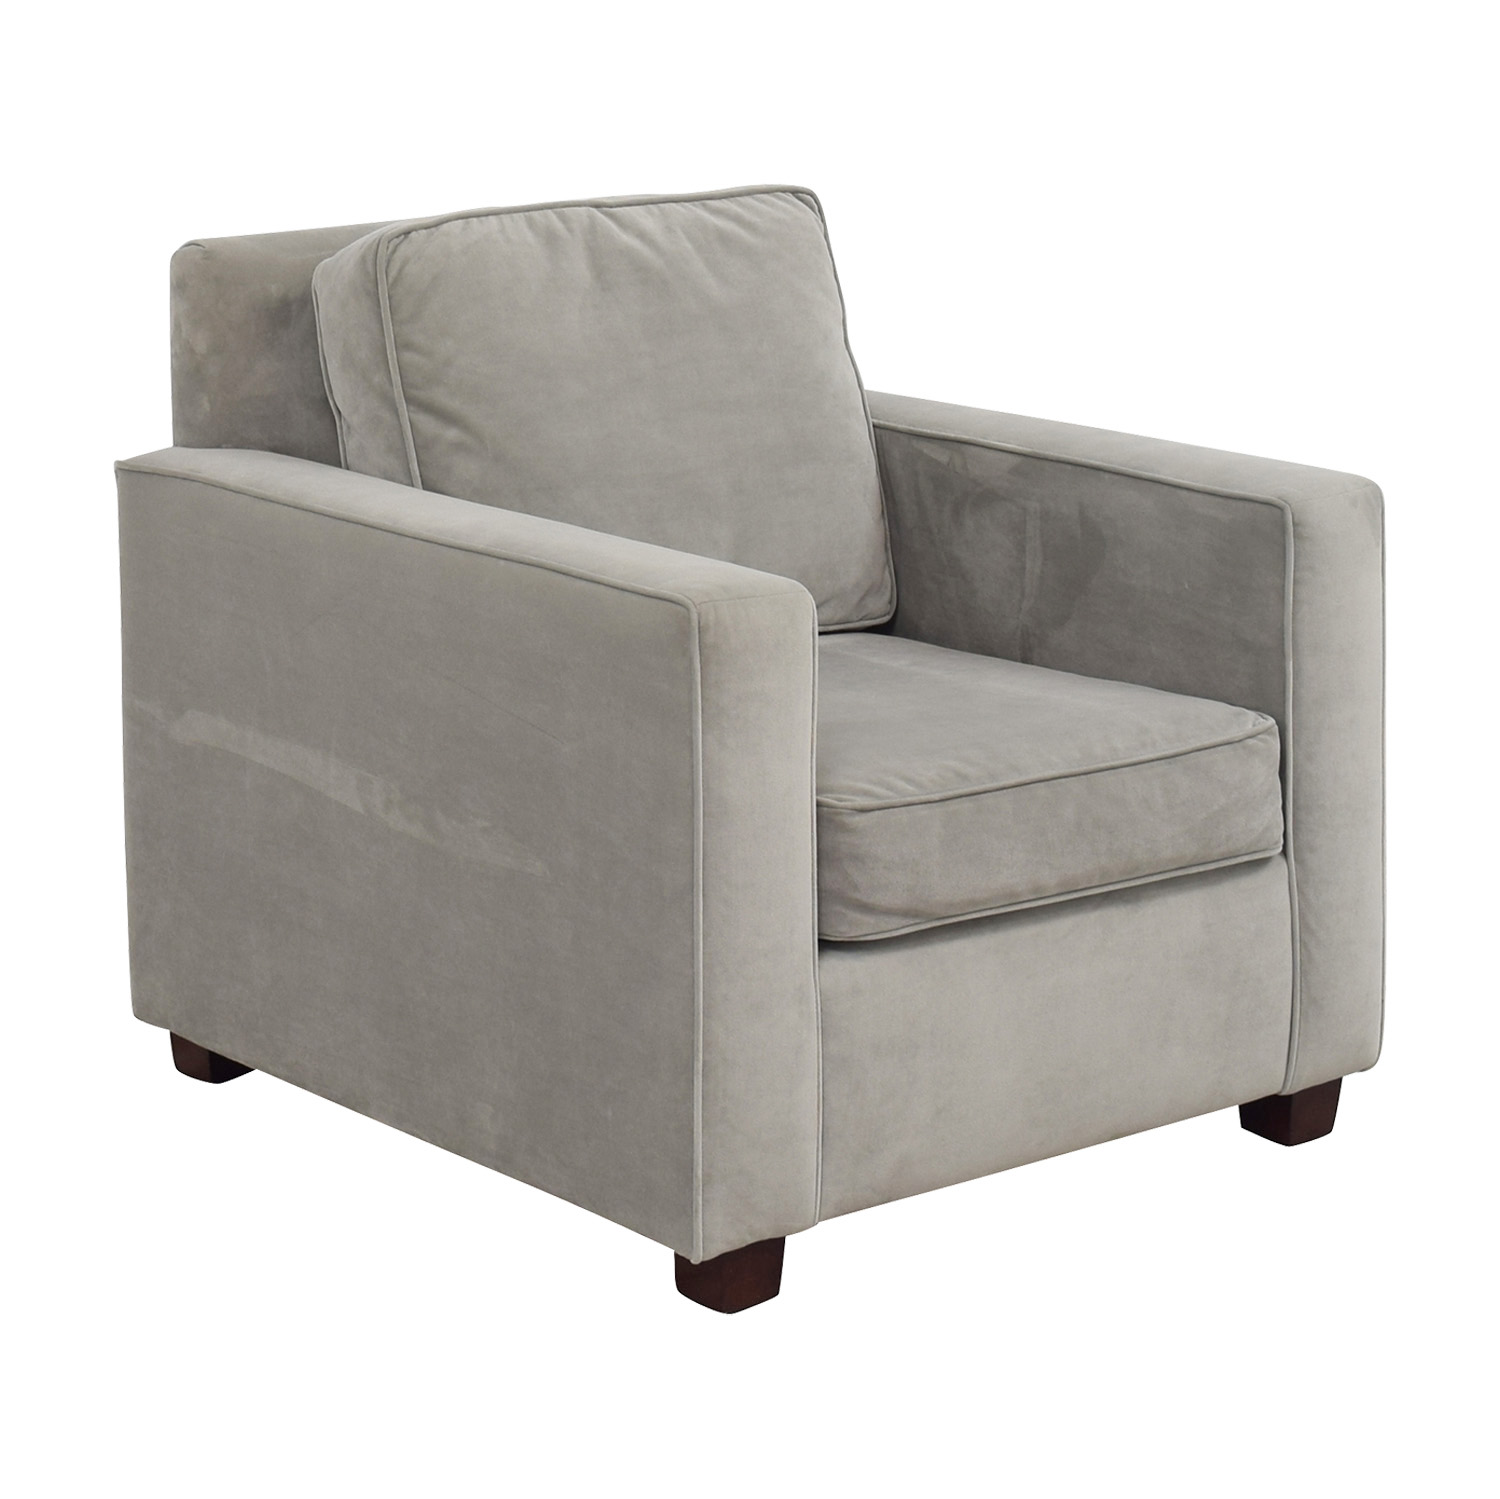 West Elm West Elm Grey Armchair on sale